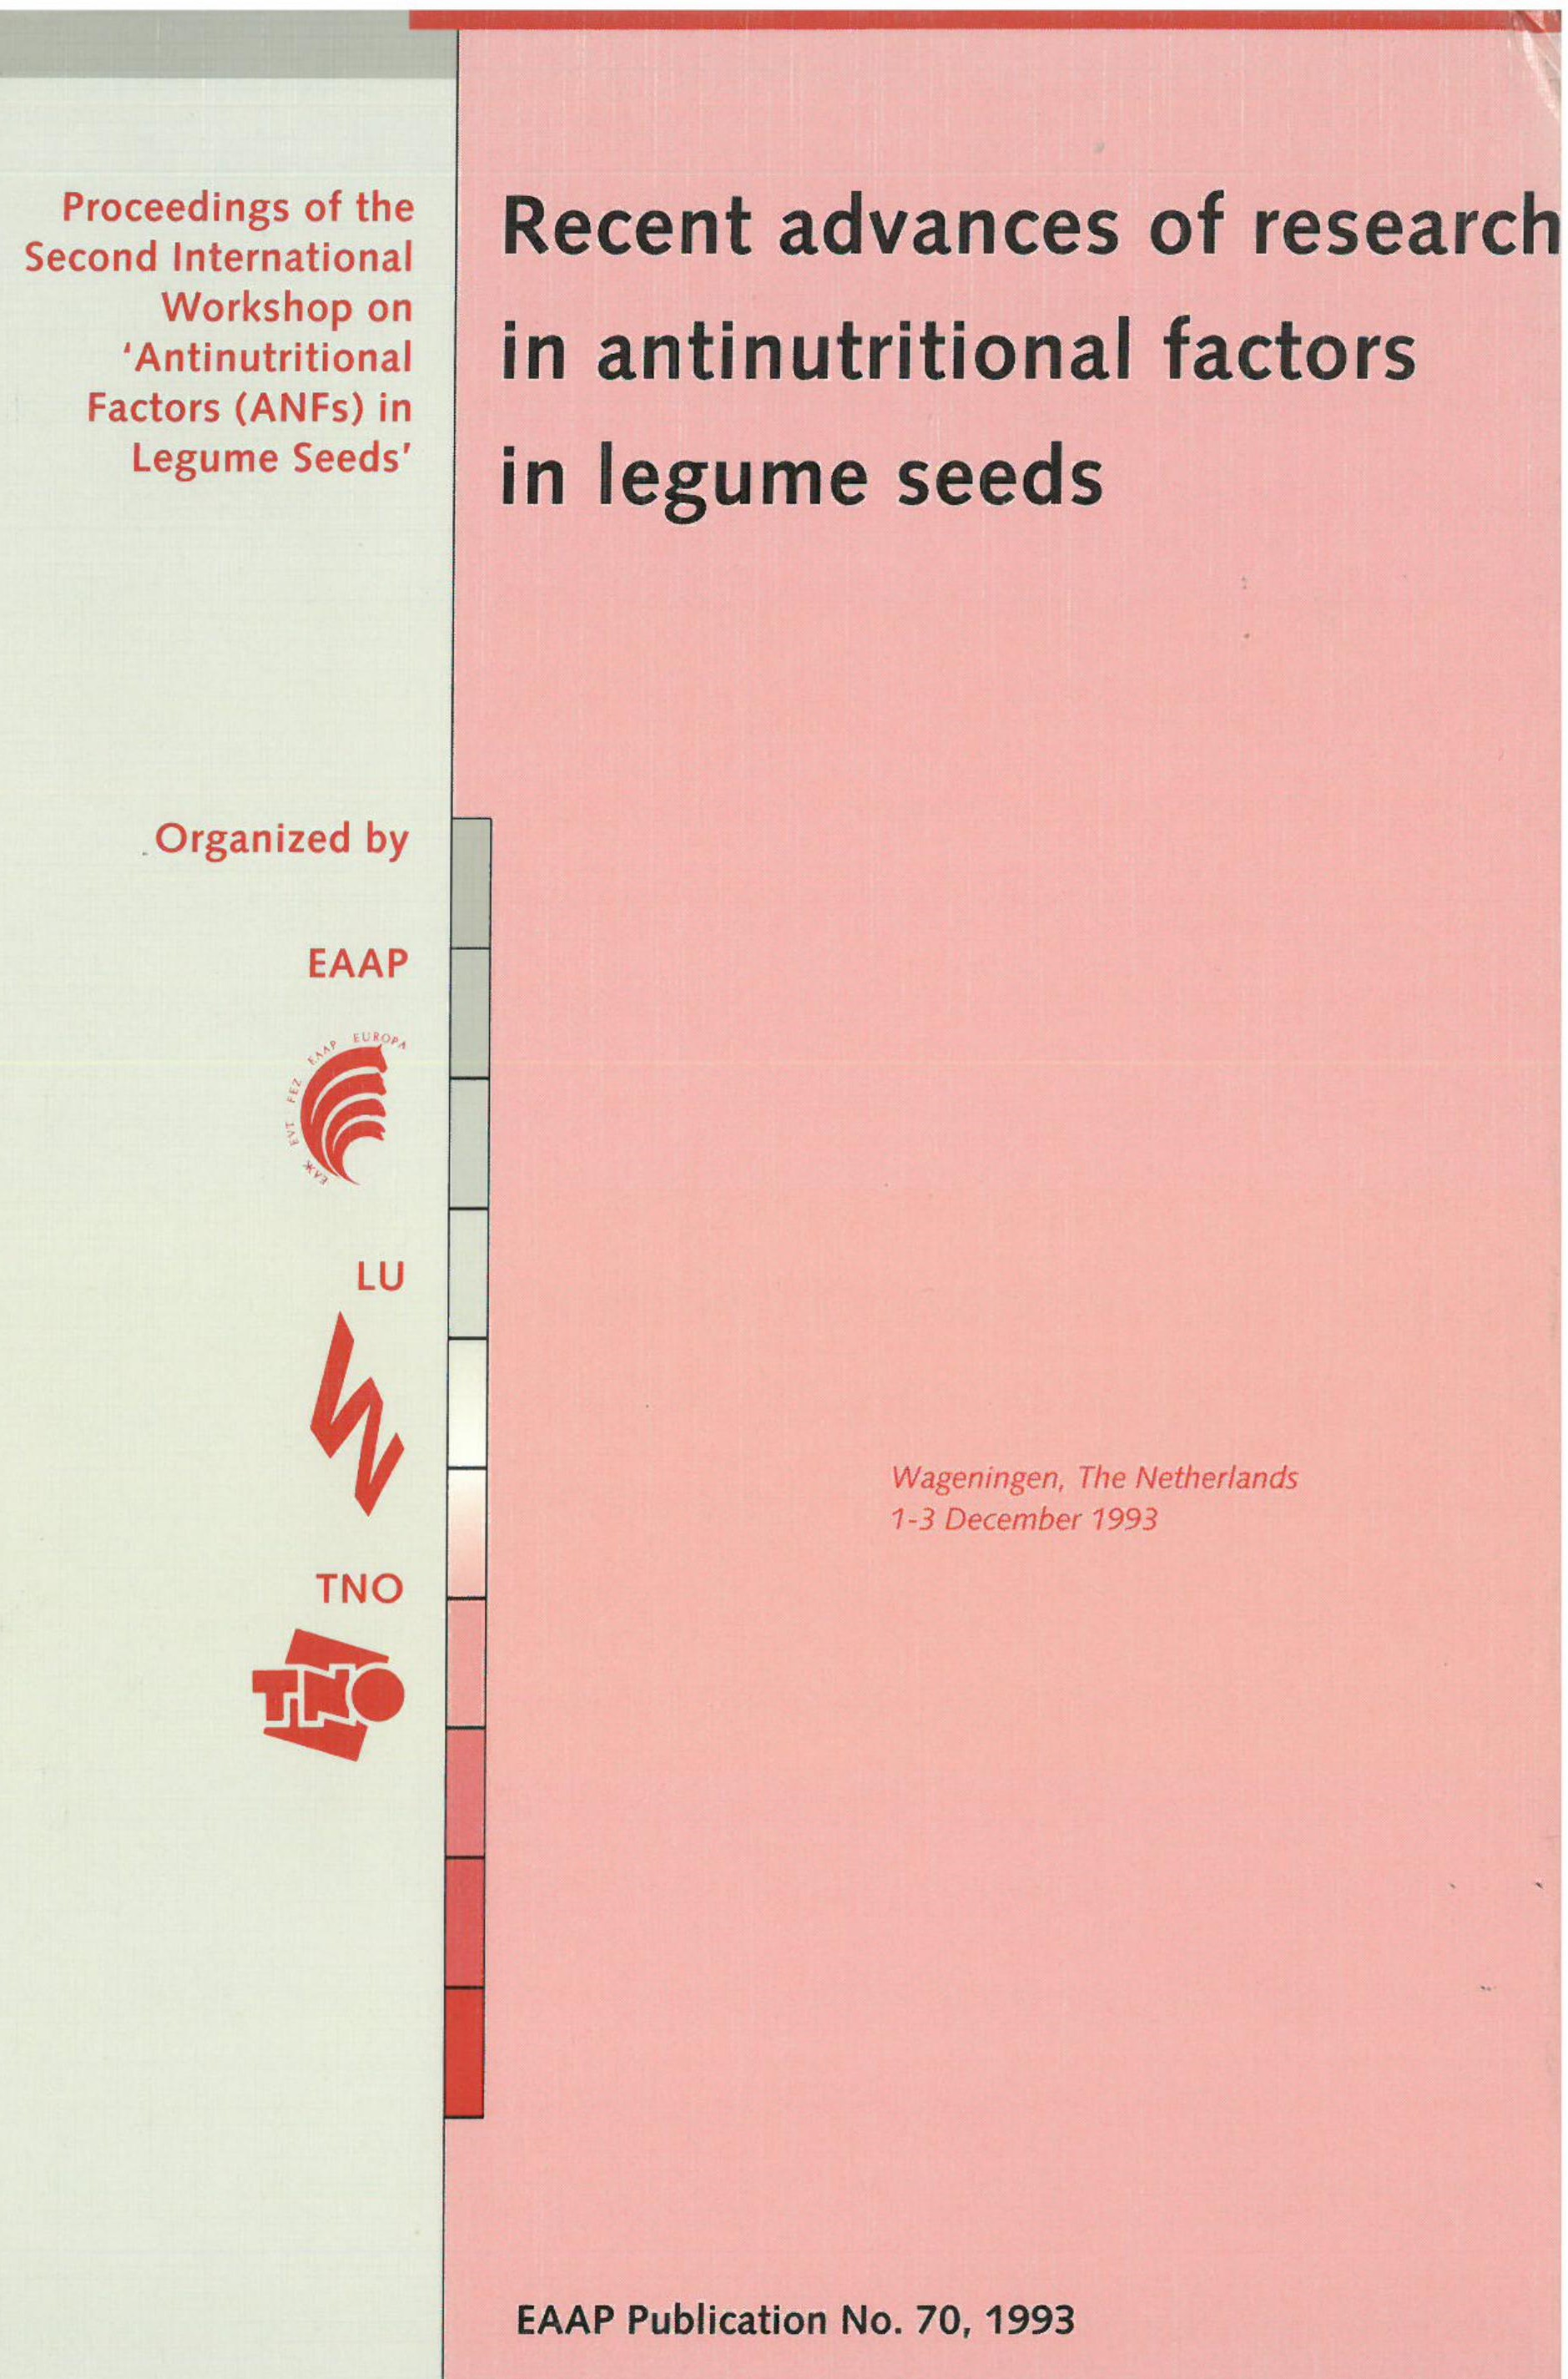 Recent advances of research in antinutritional factors in legume seeds